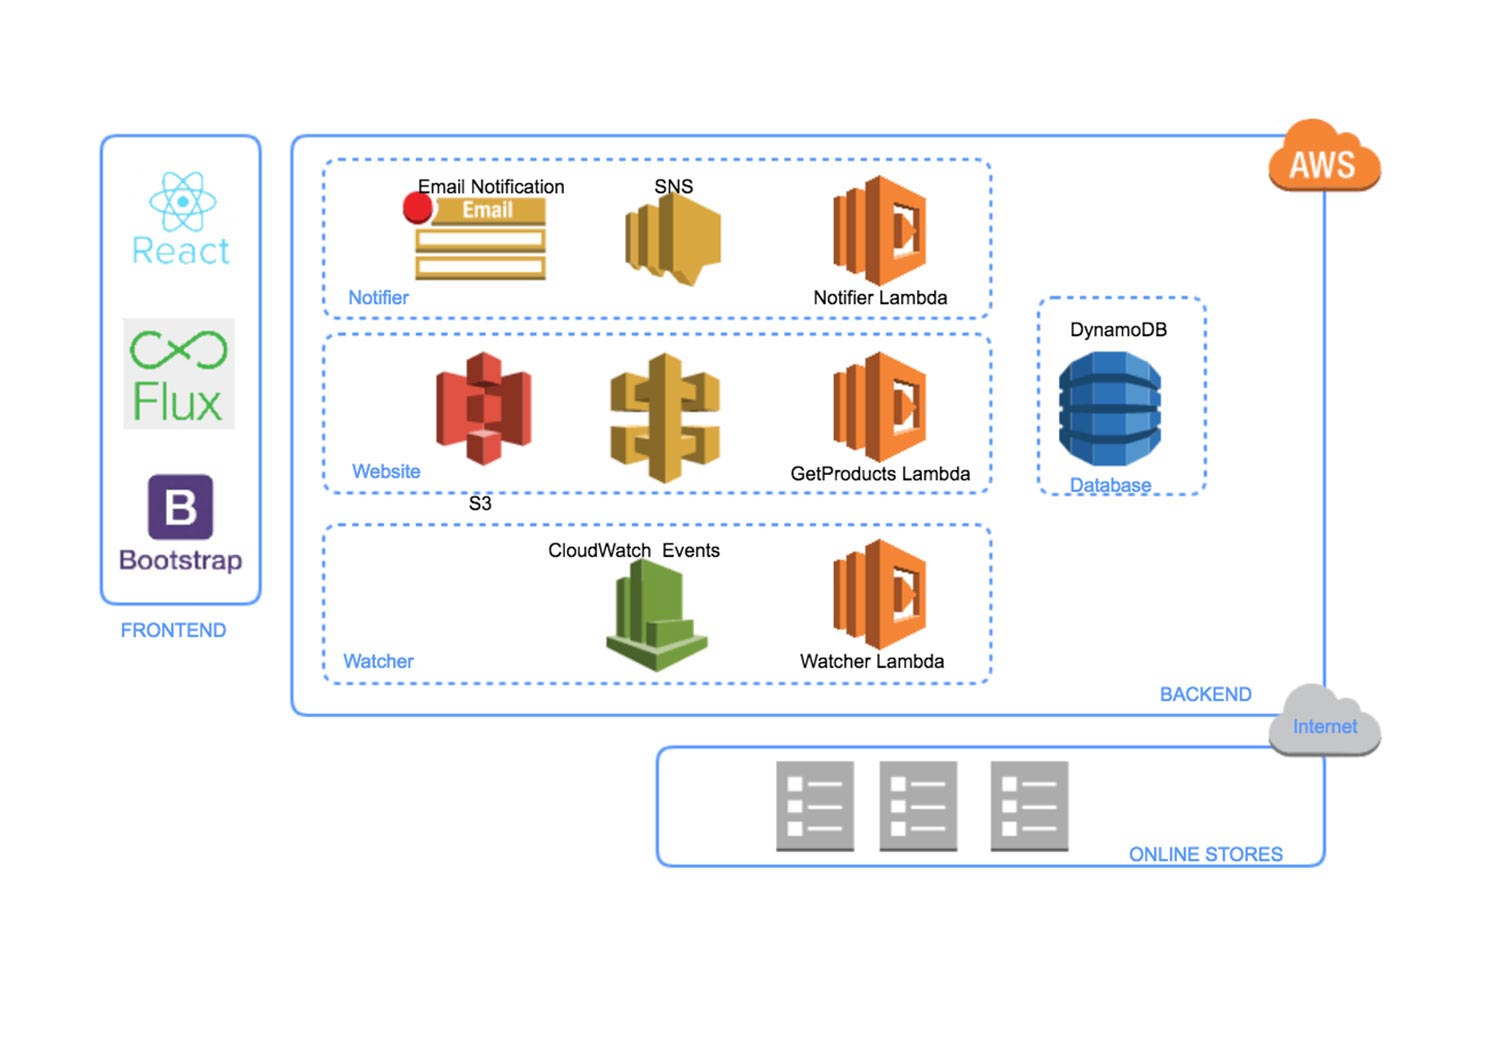 How To Draw Aws Diagrams Gliffy